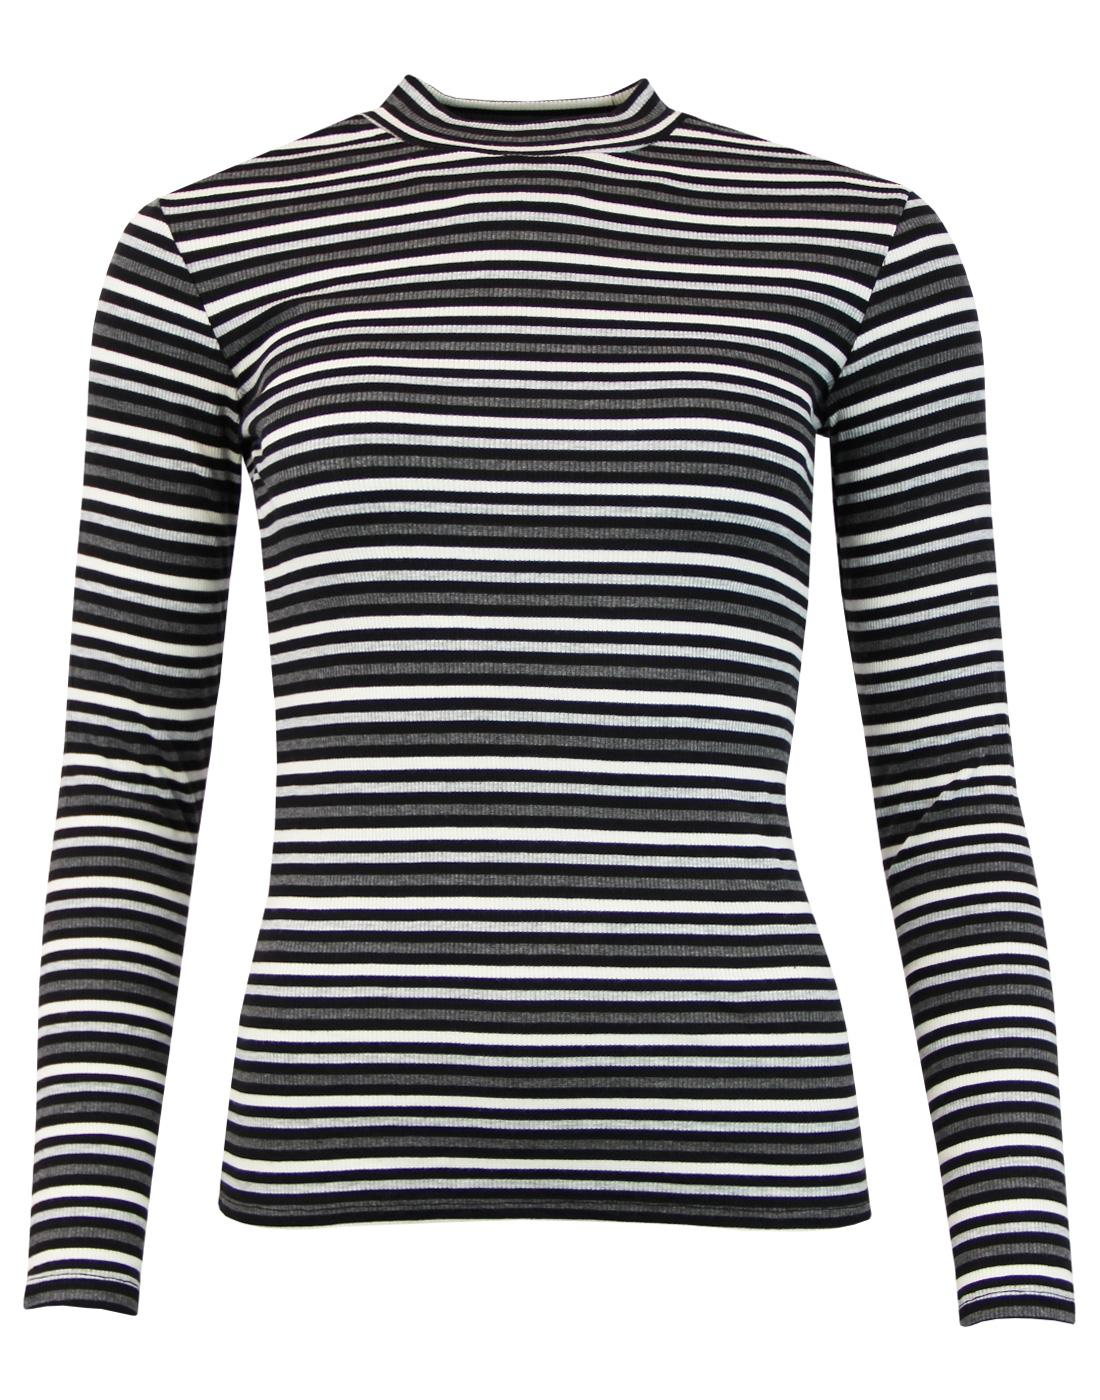 LEE Retro 60s Mod Ribbed Stripe Turtleneck Top (B)